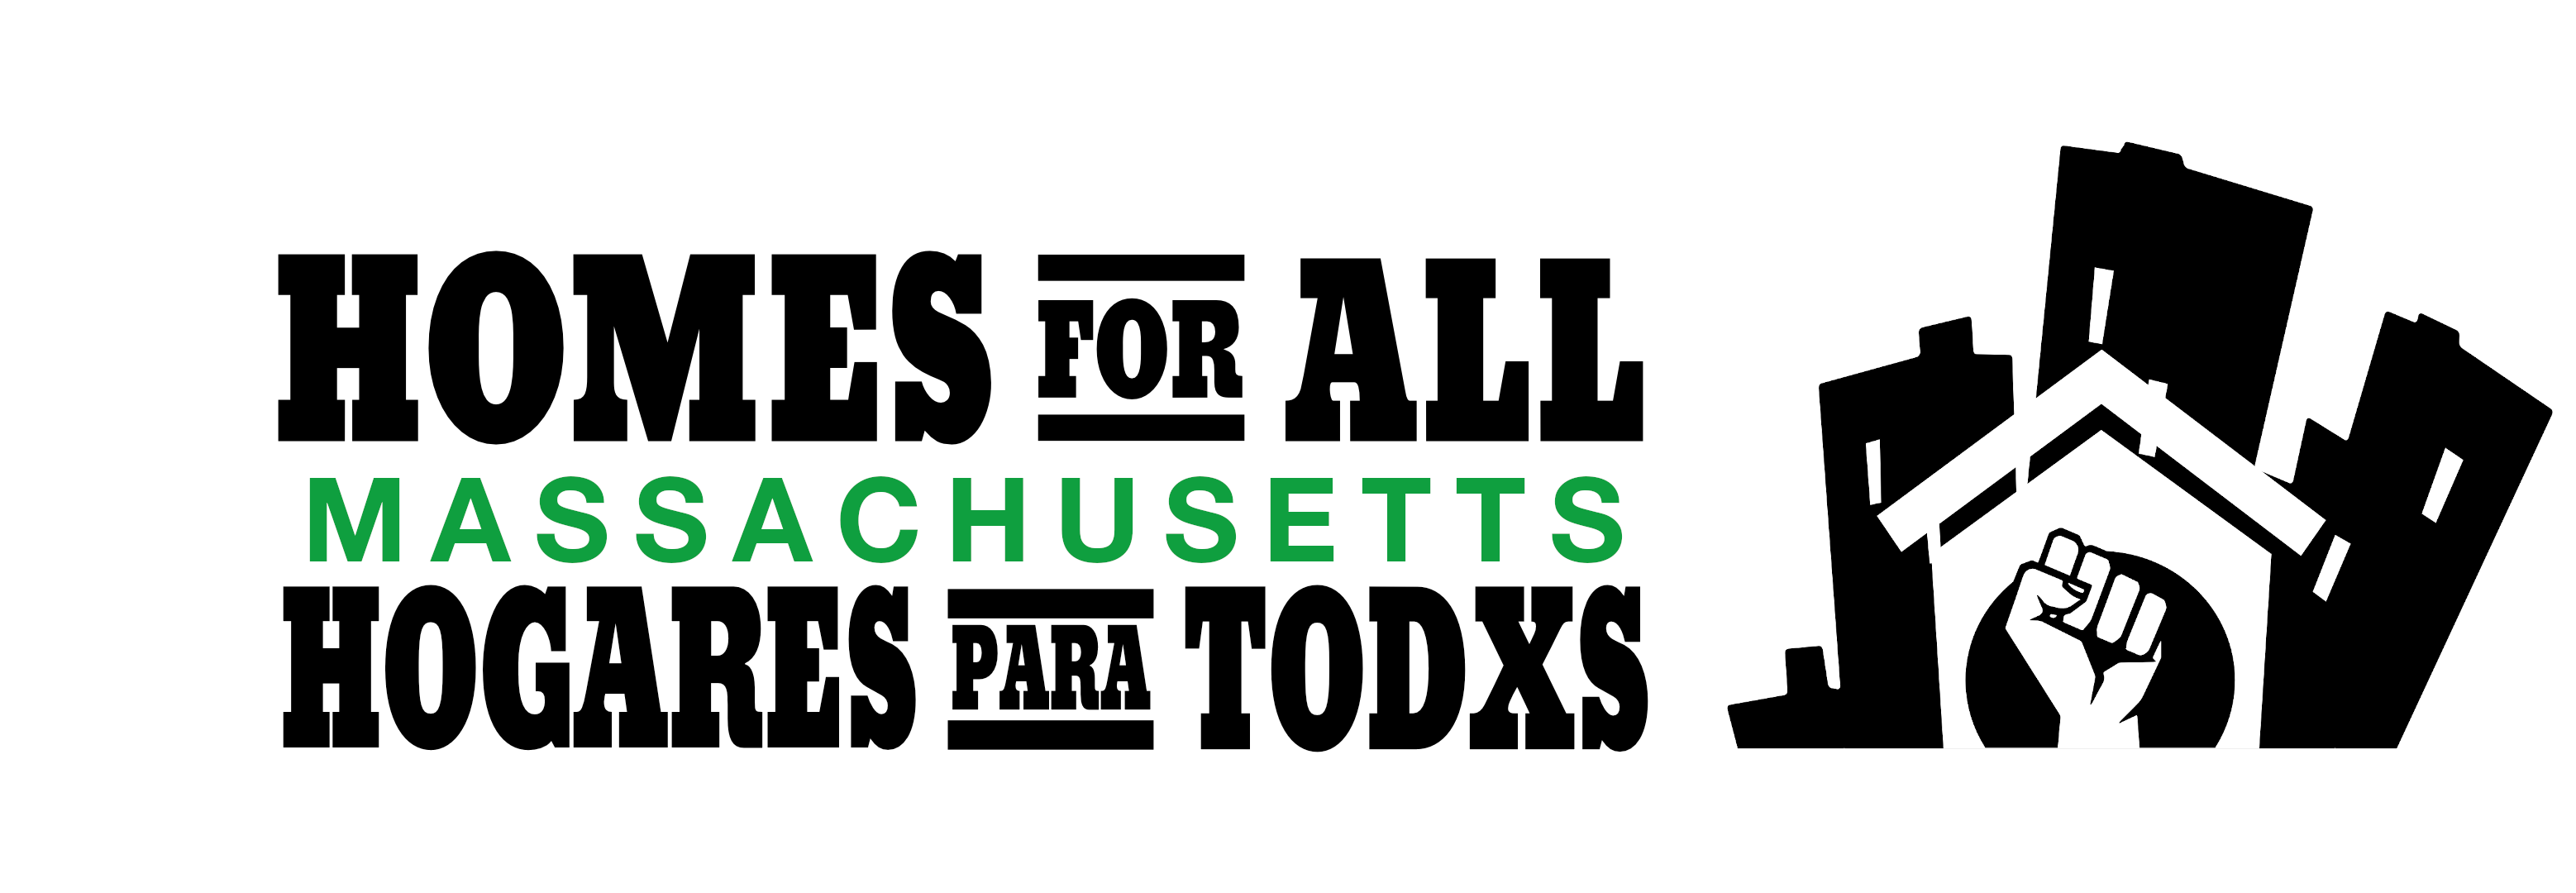 Homes for All - Massachusetts